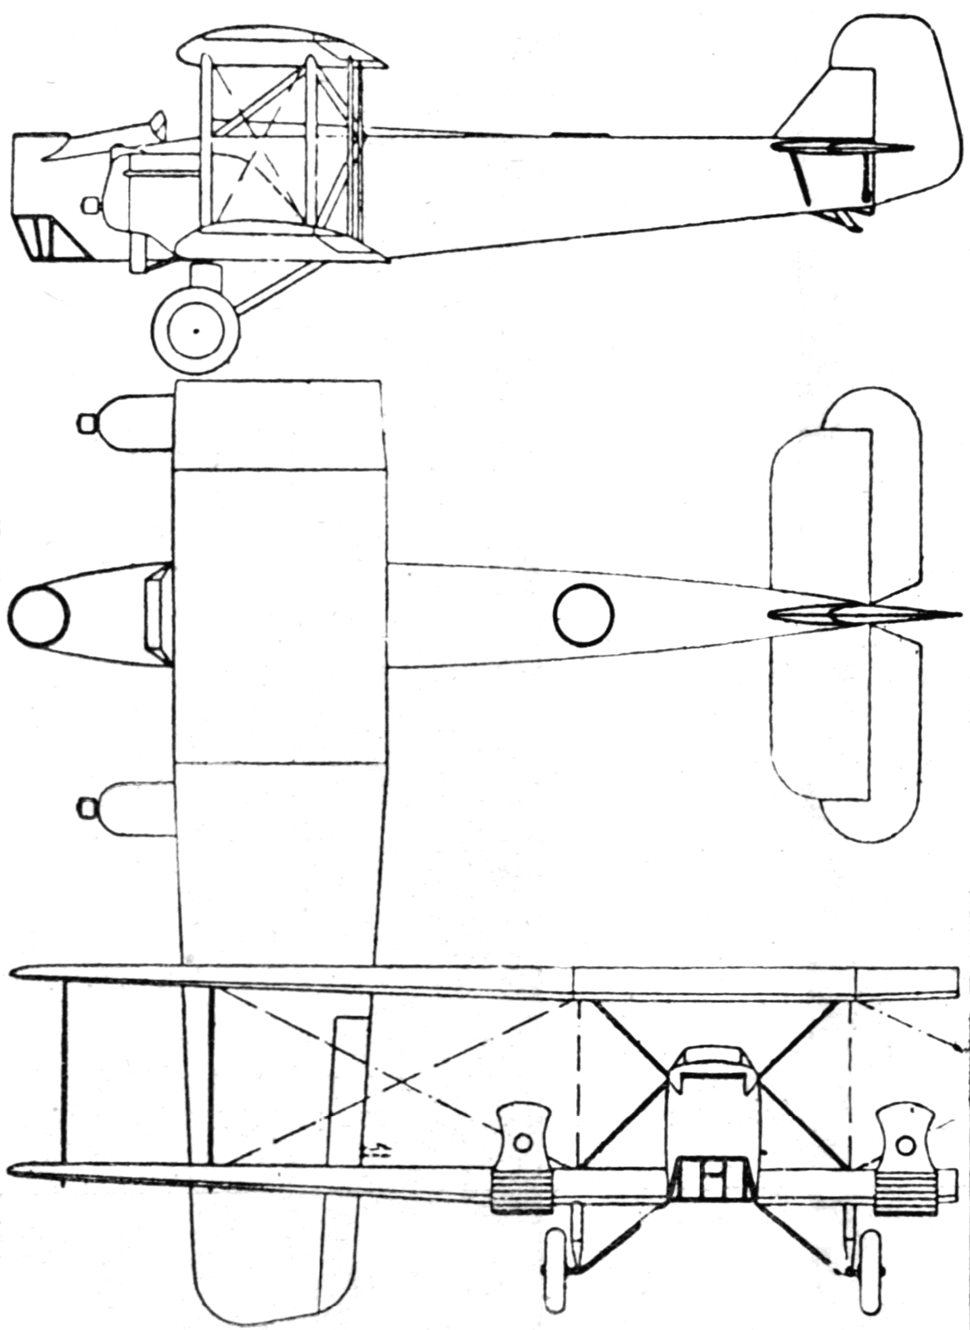 Keystone XLB-5 3-view L'Air February 15,1928